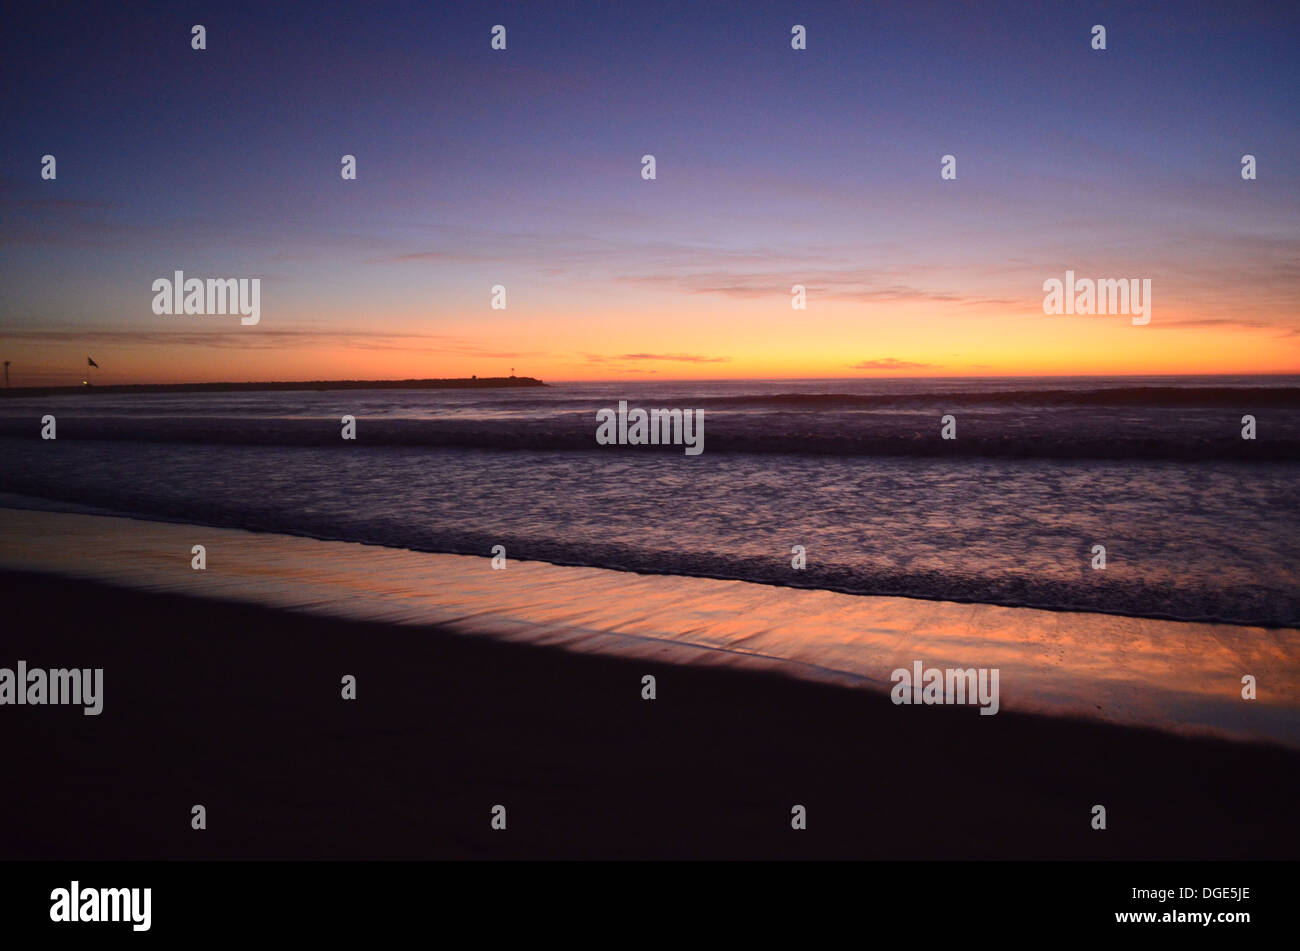 Manhattan Beach Sunset - Stock Image